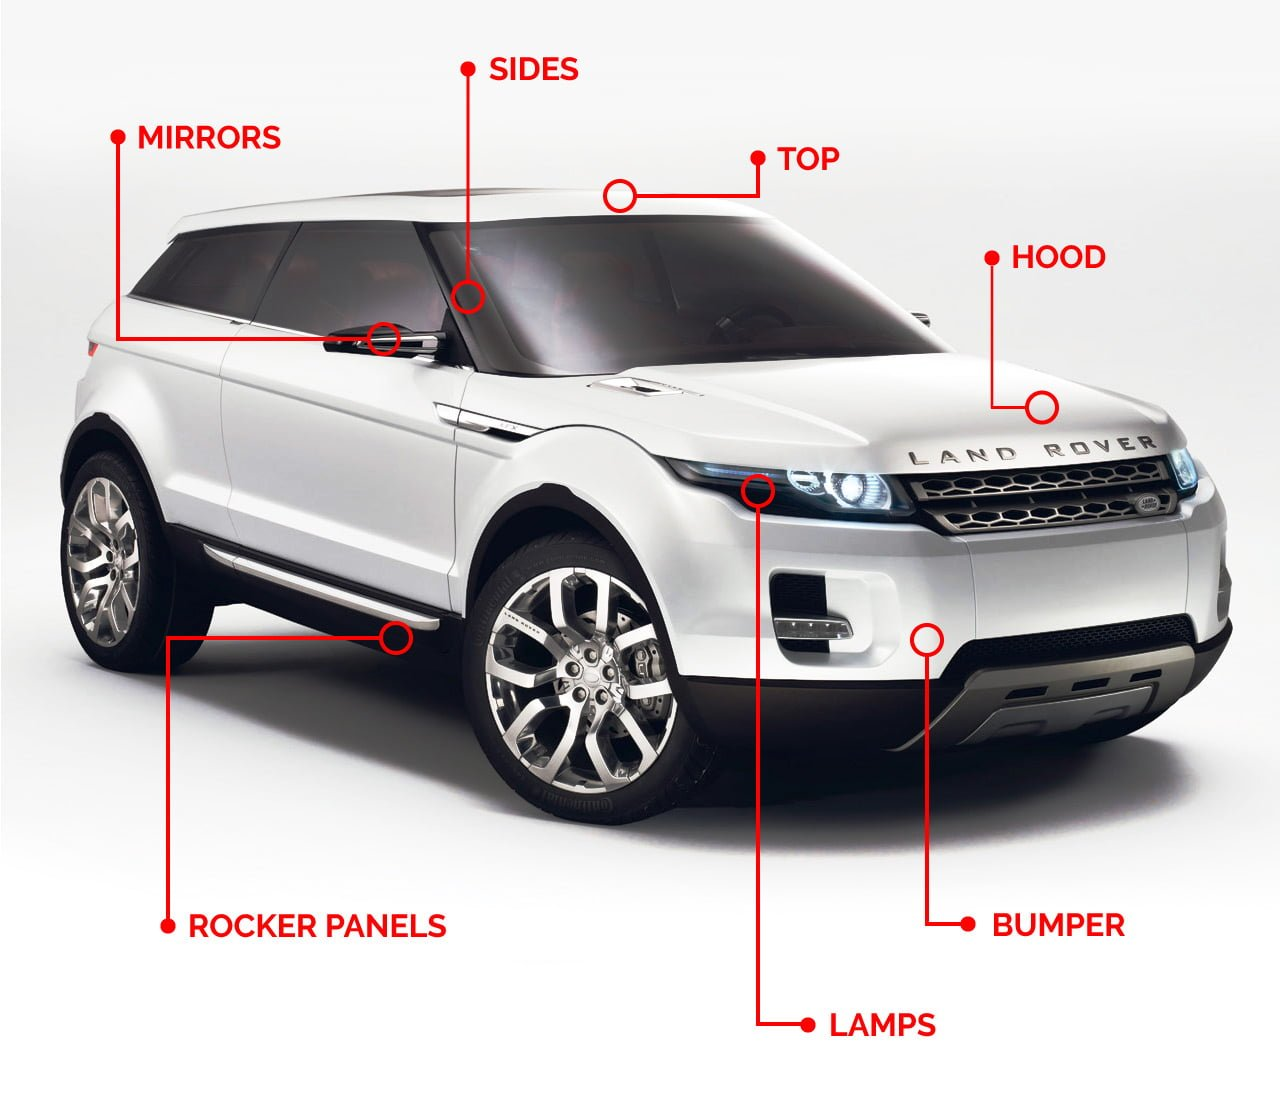 Enumerated car parts for paint protection film